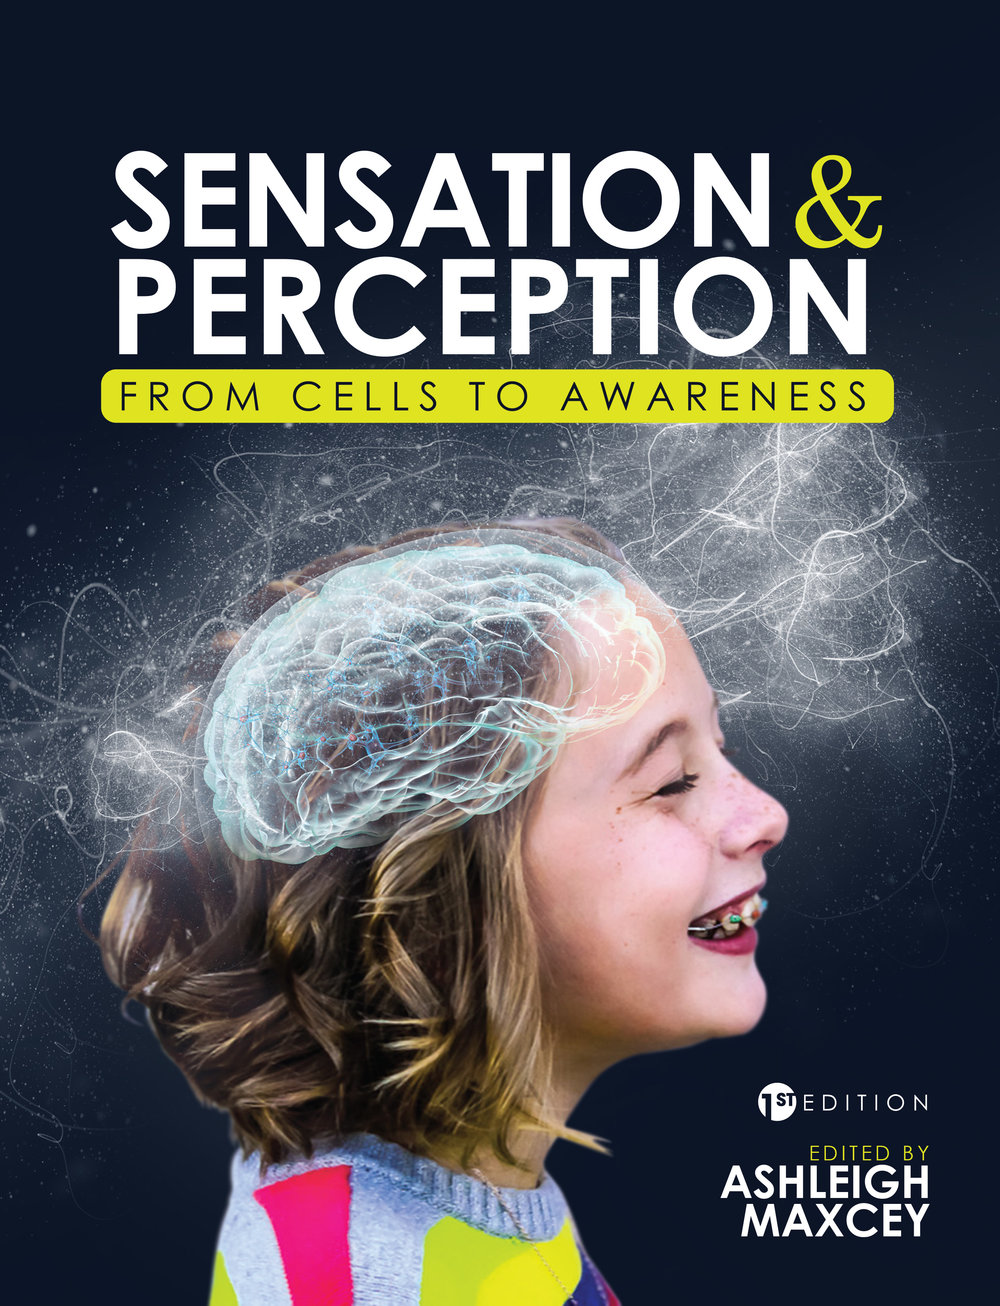 Sensation & Perception: From Cells to Awareness - Ed. Ashleigh Maxcey. Available on Amazon (here) and Cognella (here).